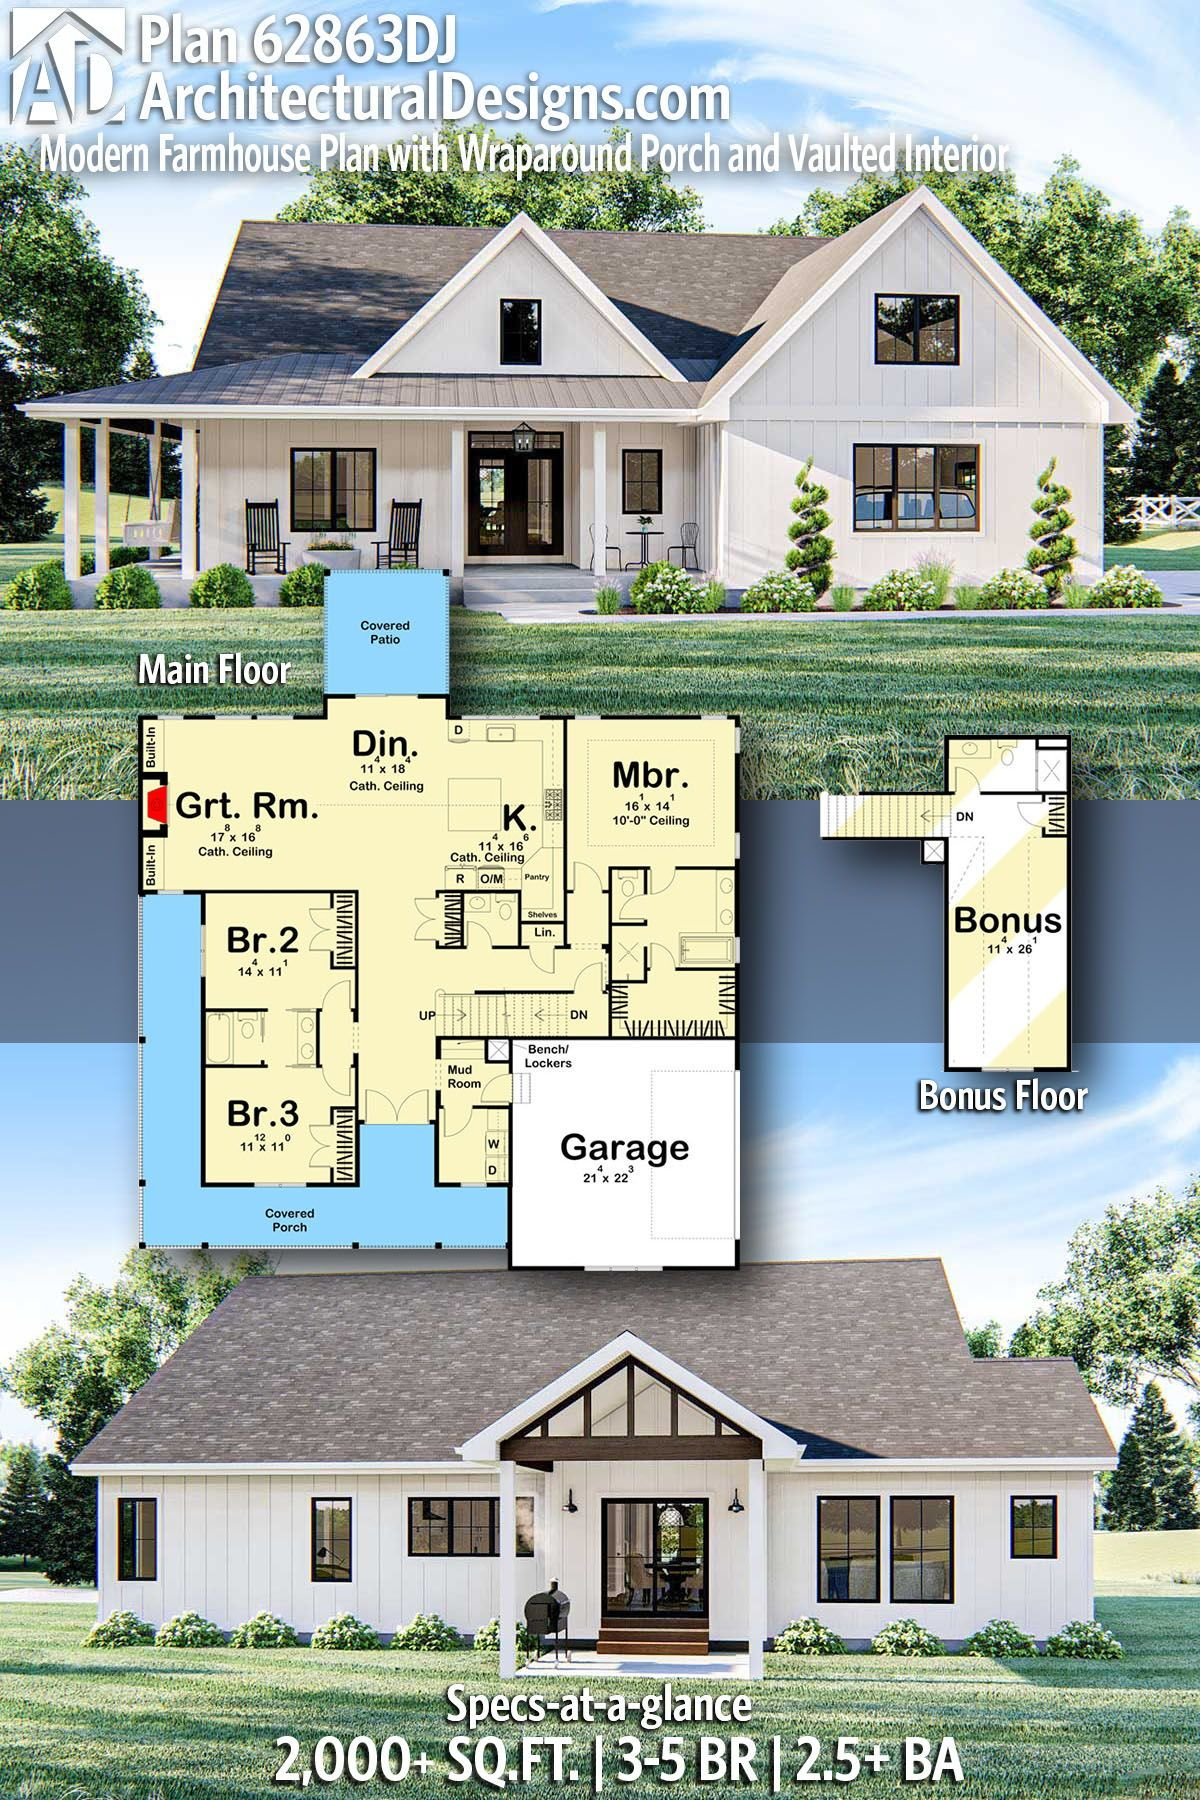 Plan 62863dj Modern Farmhouse Plan With Wraparound Porch And Vaulted Interior Modern Farmhouse Plans Farmhouse Plans House Plans